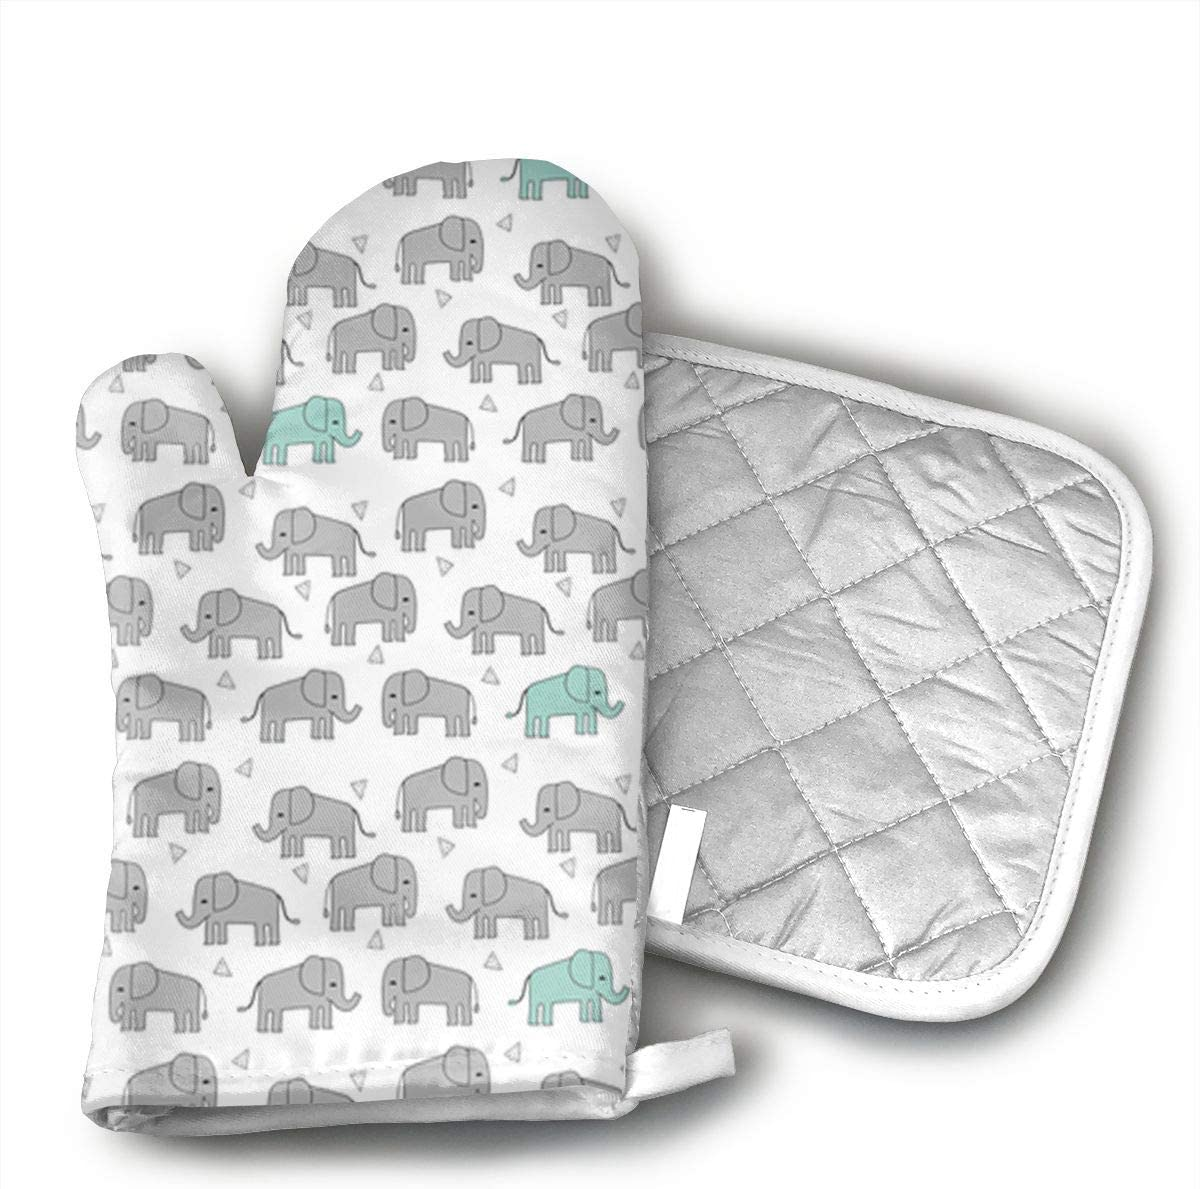 KEIOO Grey Mint Baby Elephant Oven Mitts and Potholders Heat Resistant Set of 2 Kitchen Set Non-Slip Grip Oven Gloves BBQ Cooking Baking Grilling